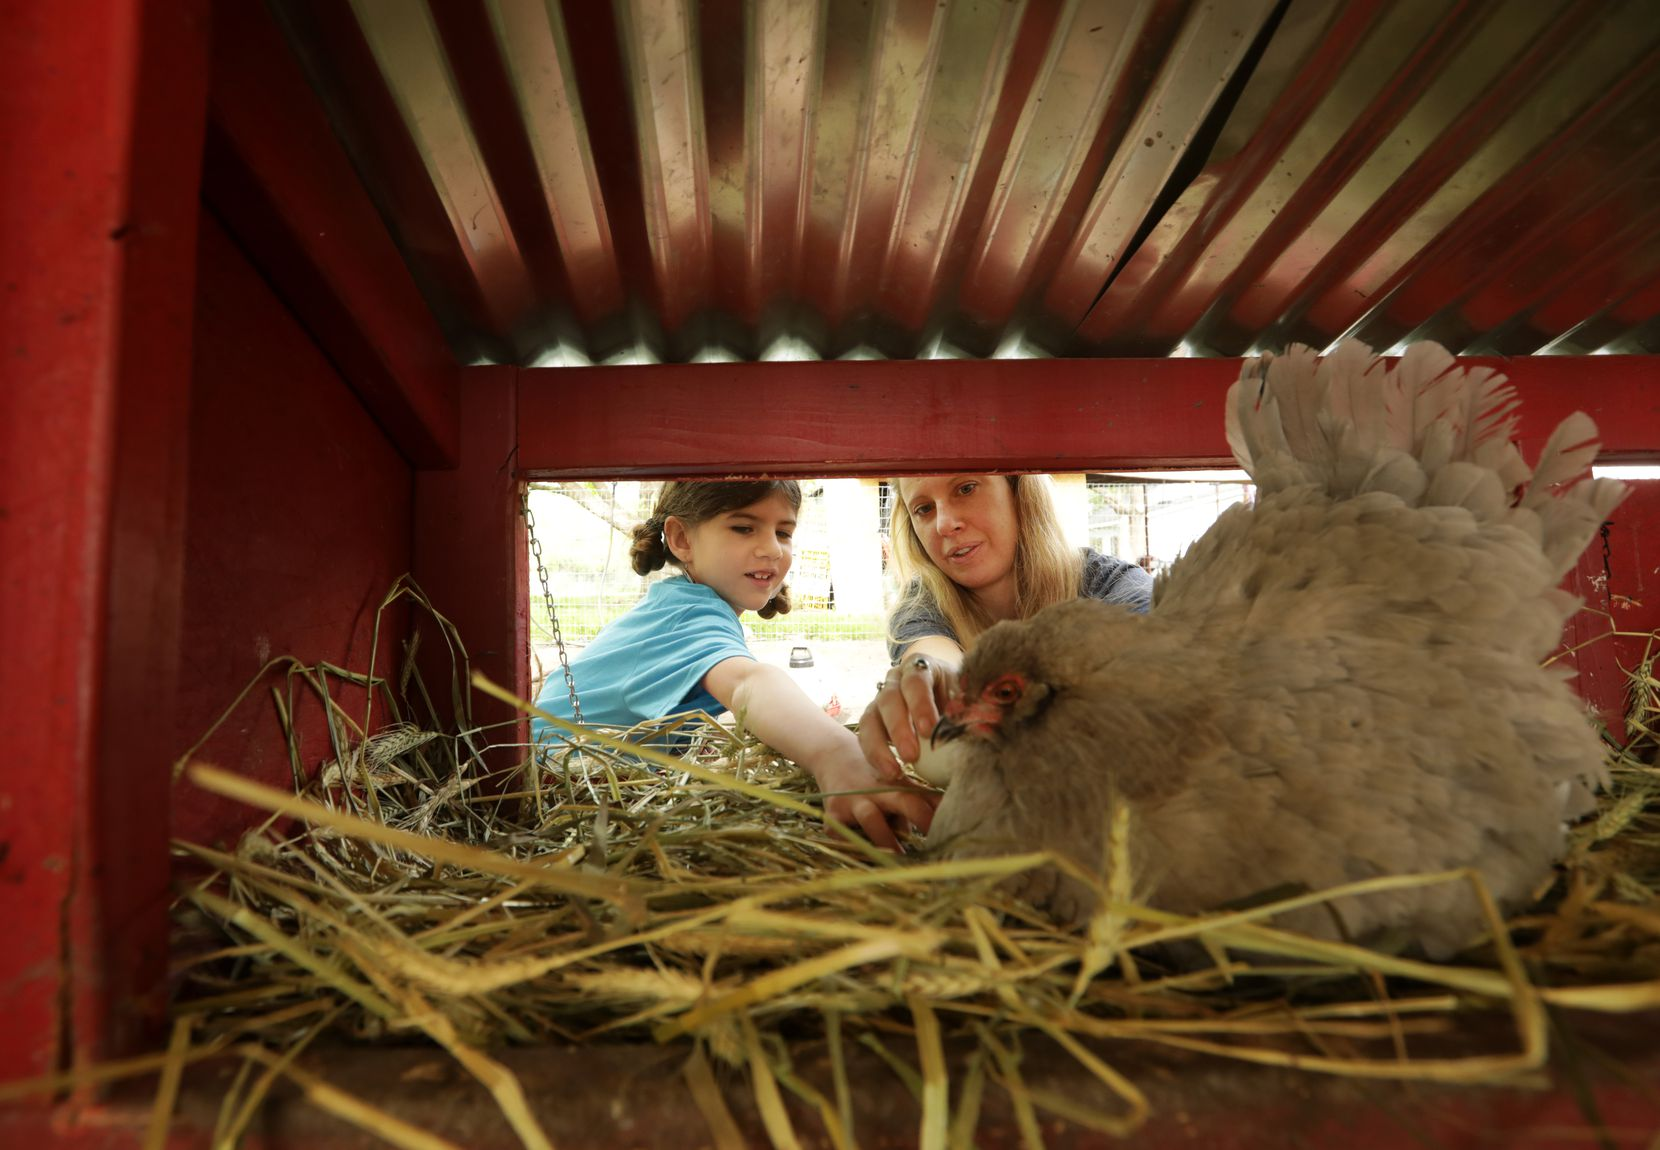 Seven-year-old Joplin Ramos, left, and Casey Cutler check for eggs in a chicken coop at their home in McKinney.